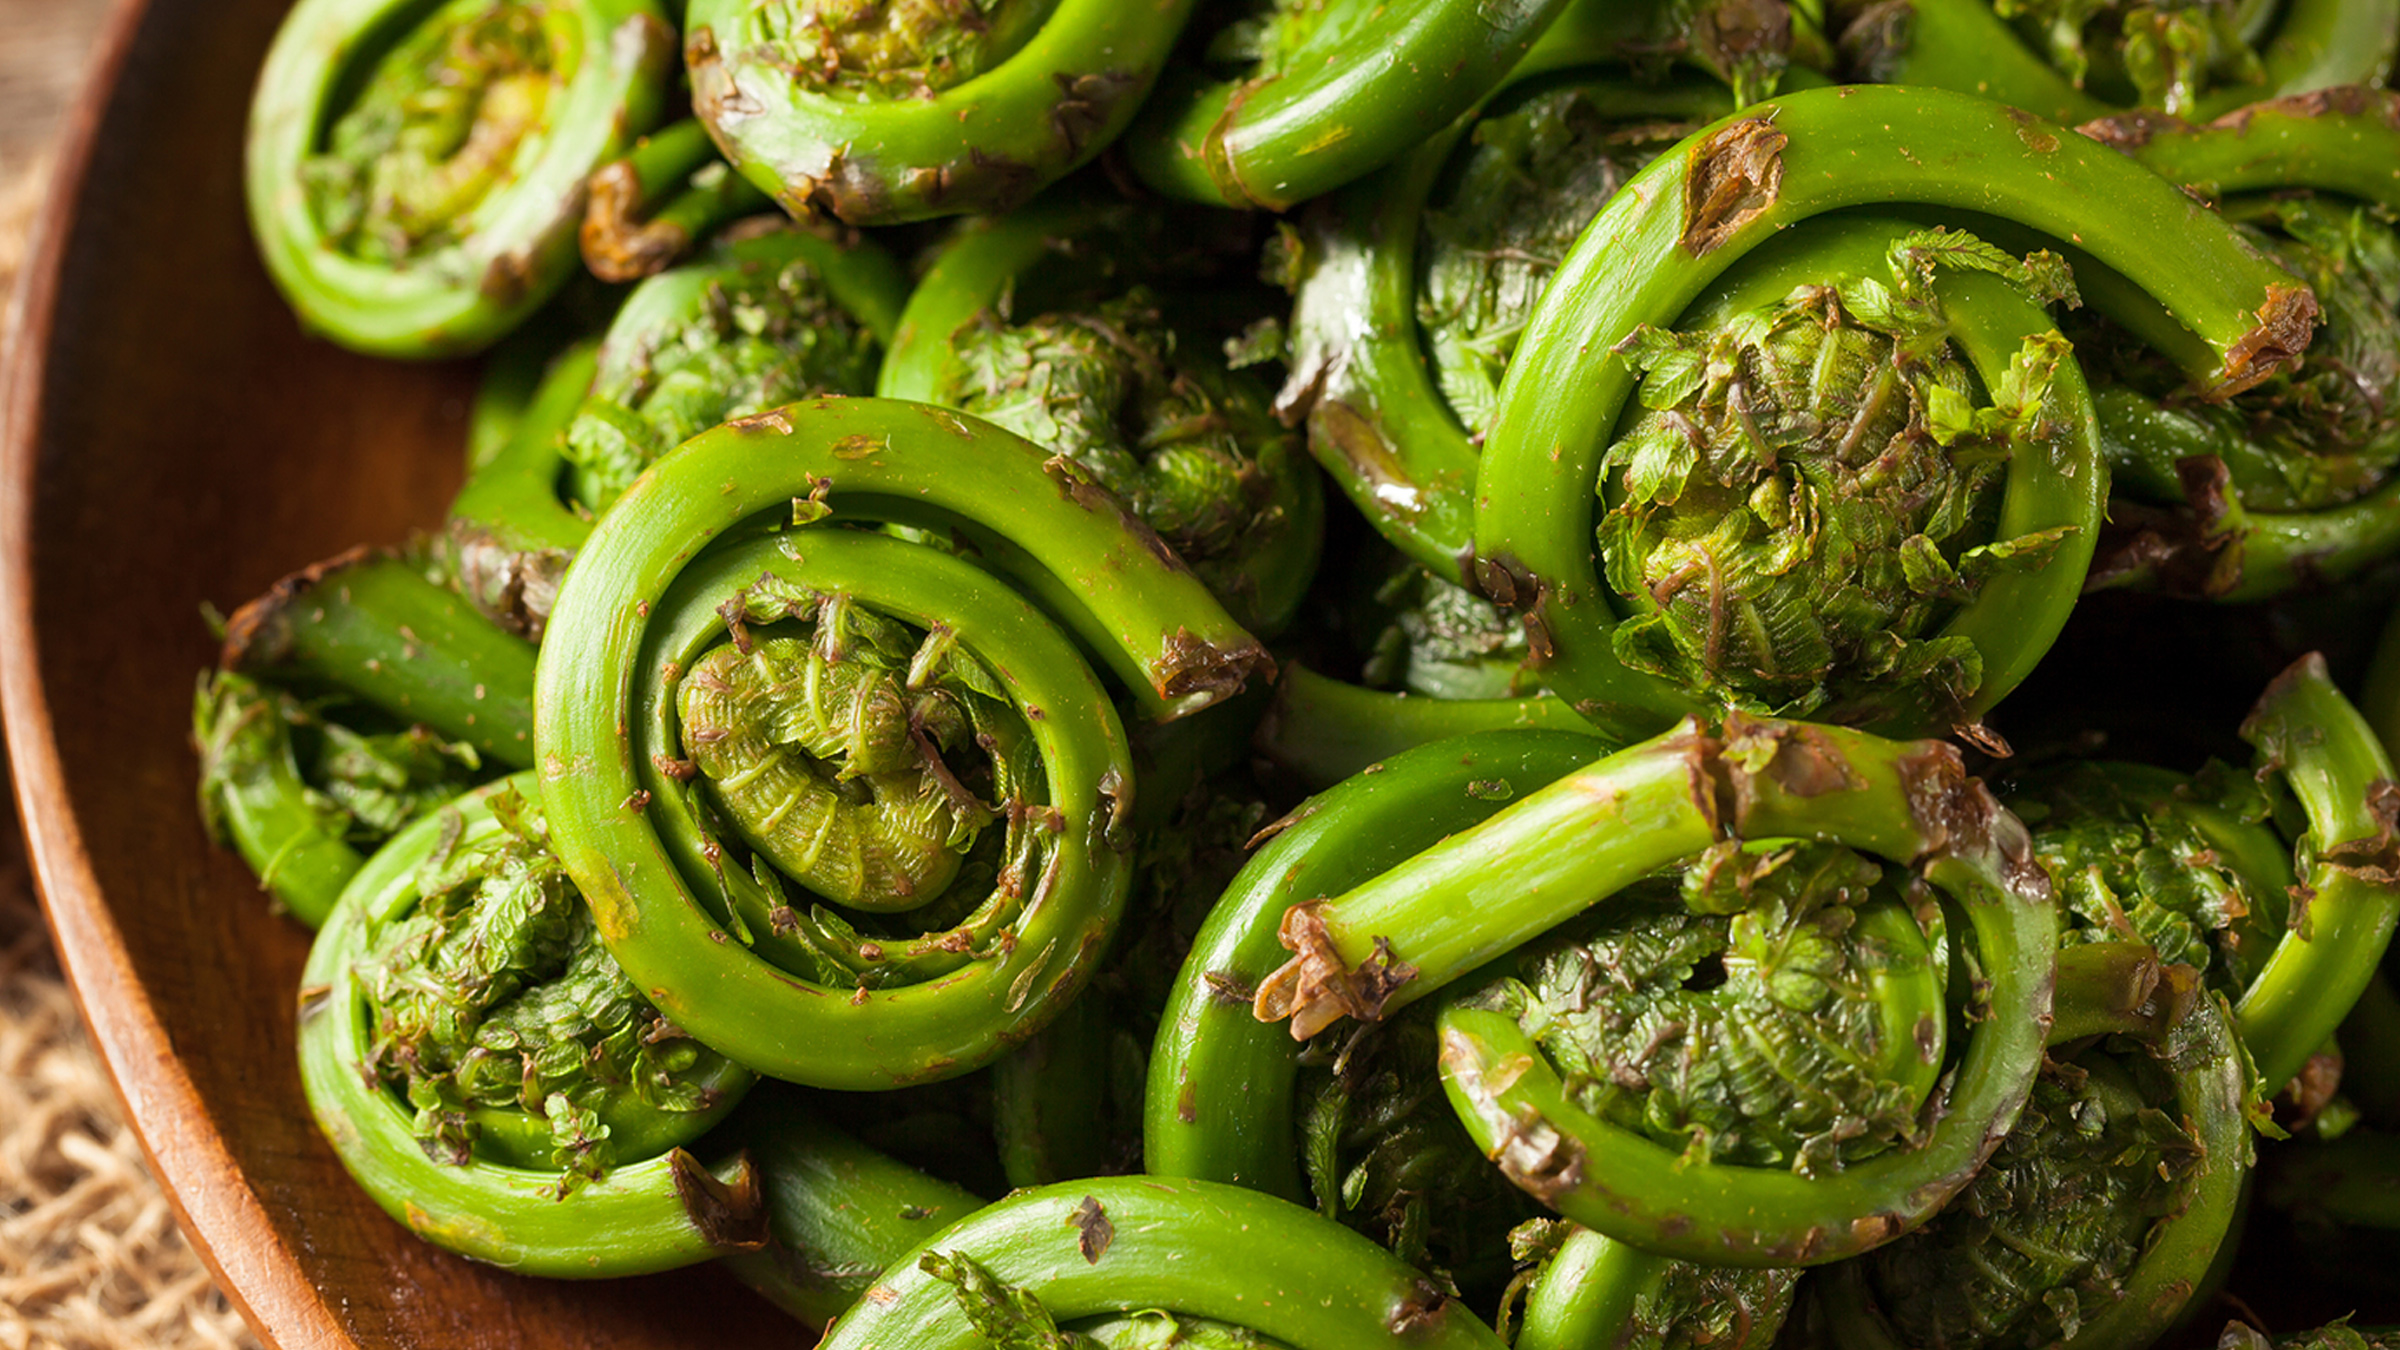 What the Heck is a Fiddlehead?